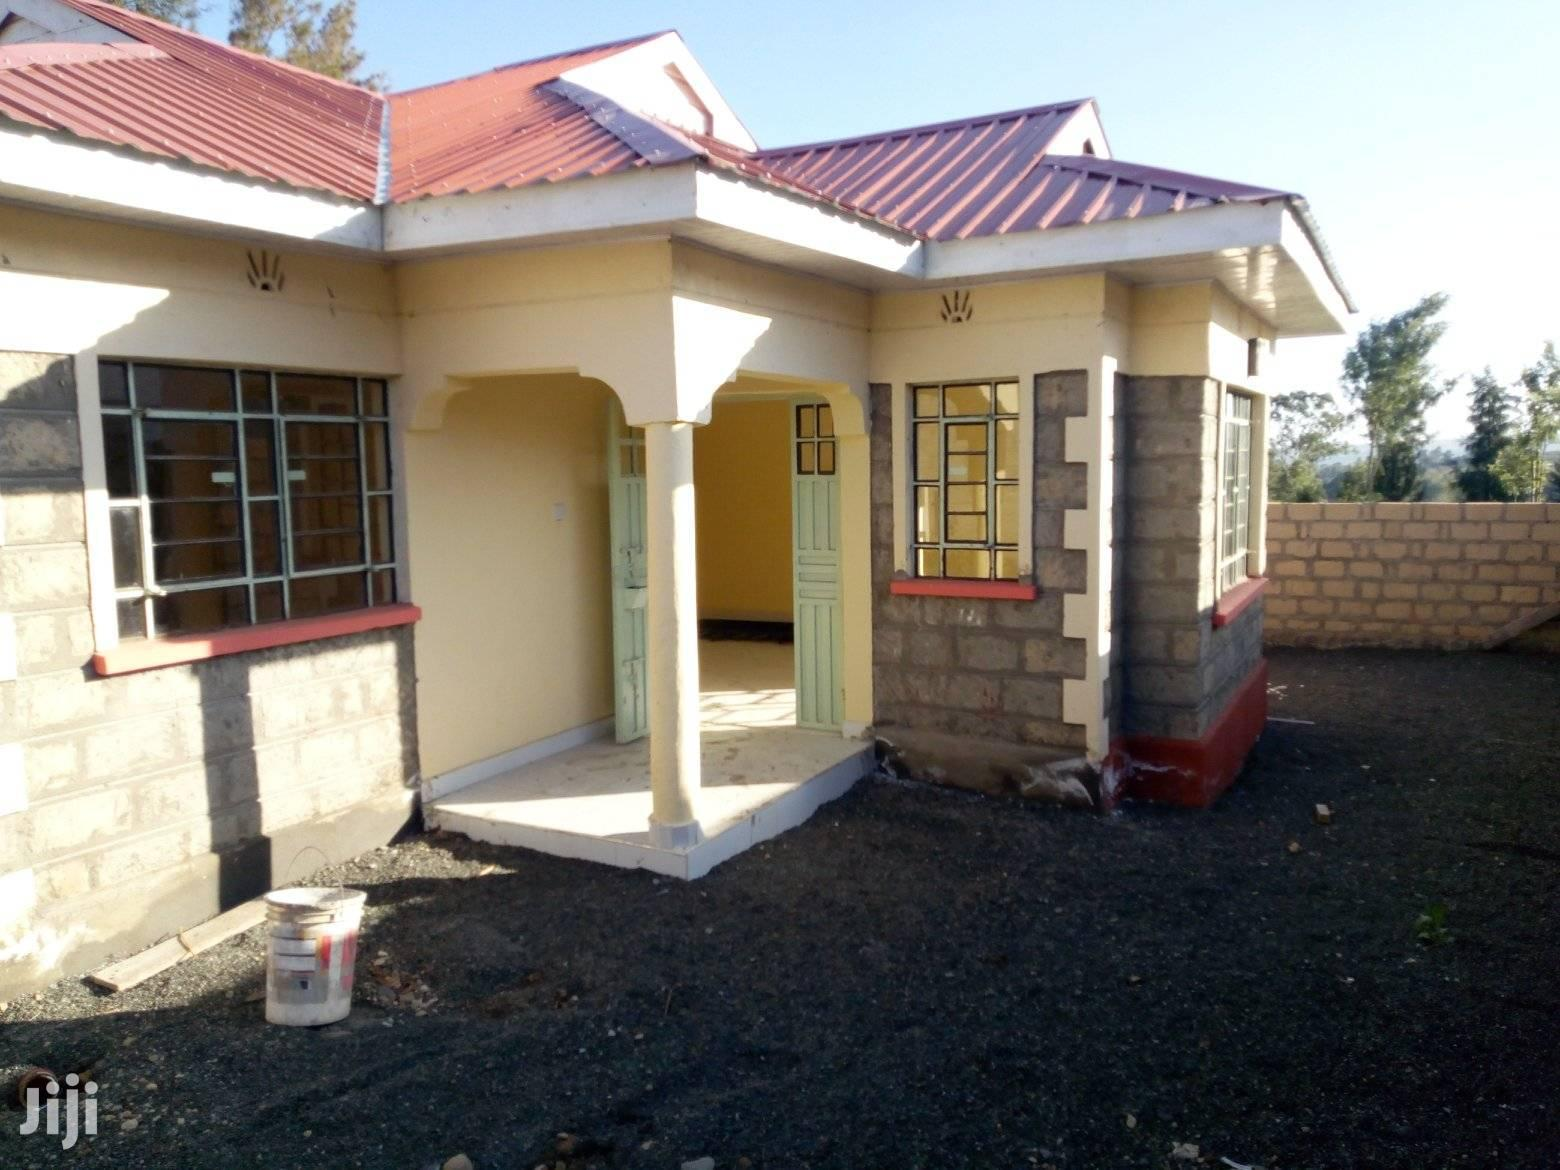 Three Bedrooms Bungalow For Sale In Ngong